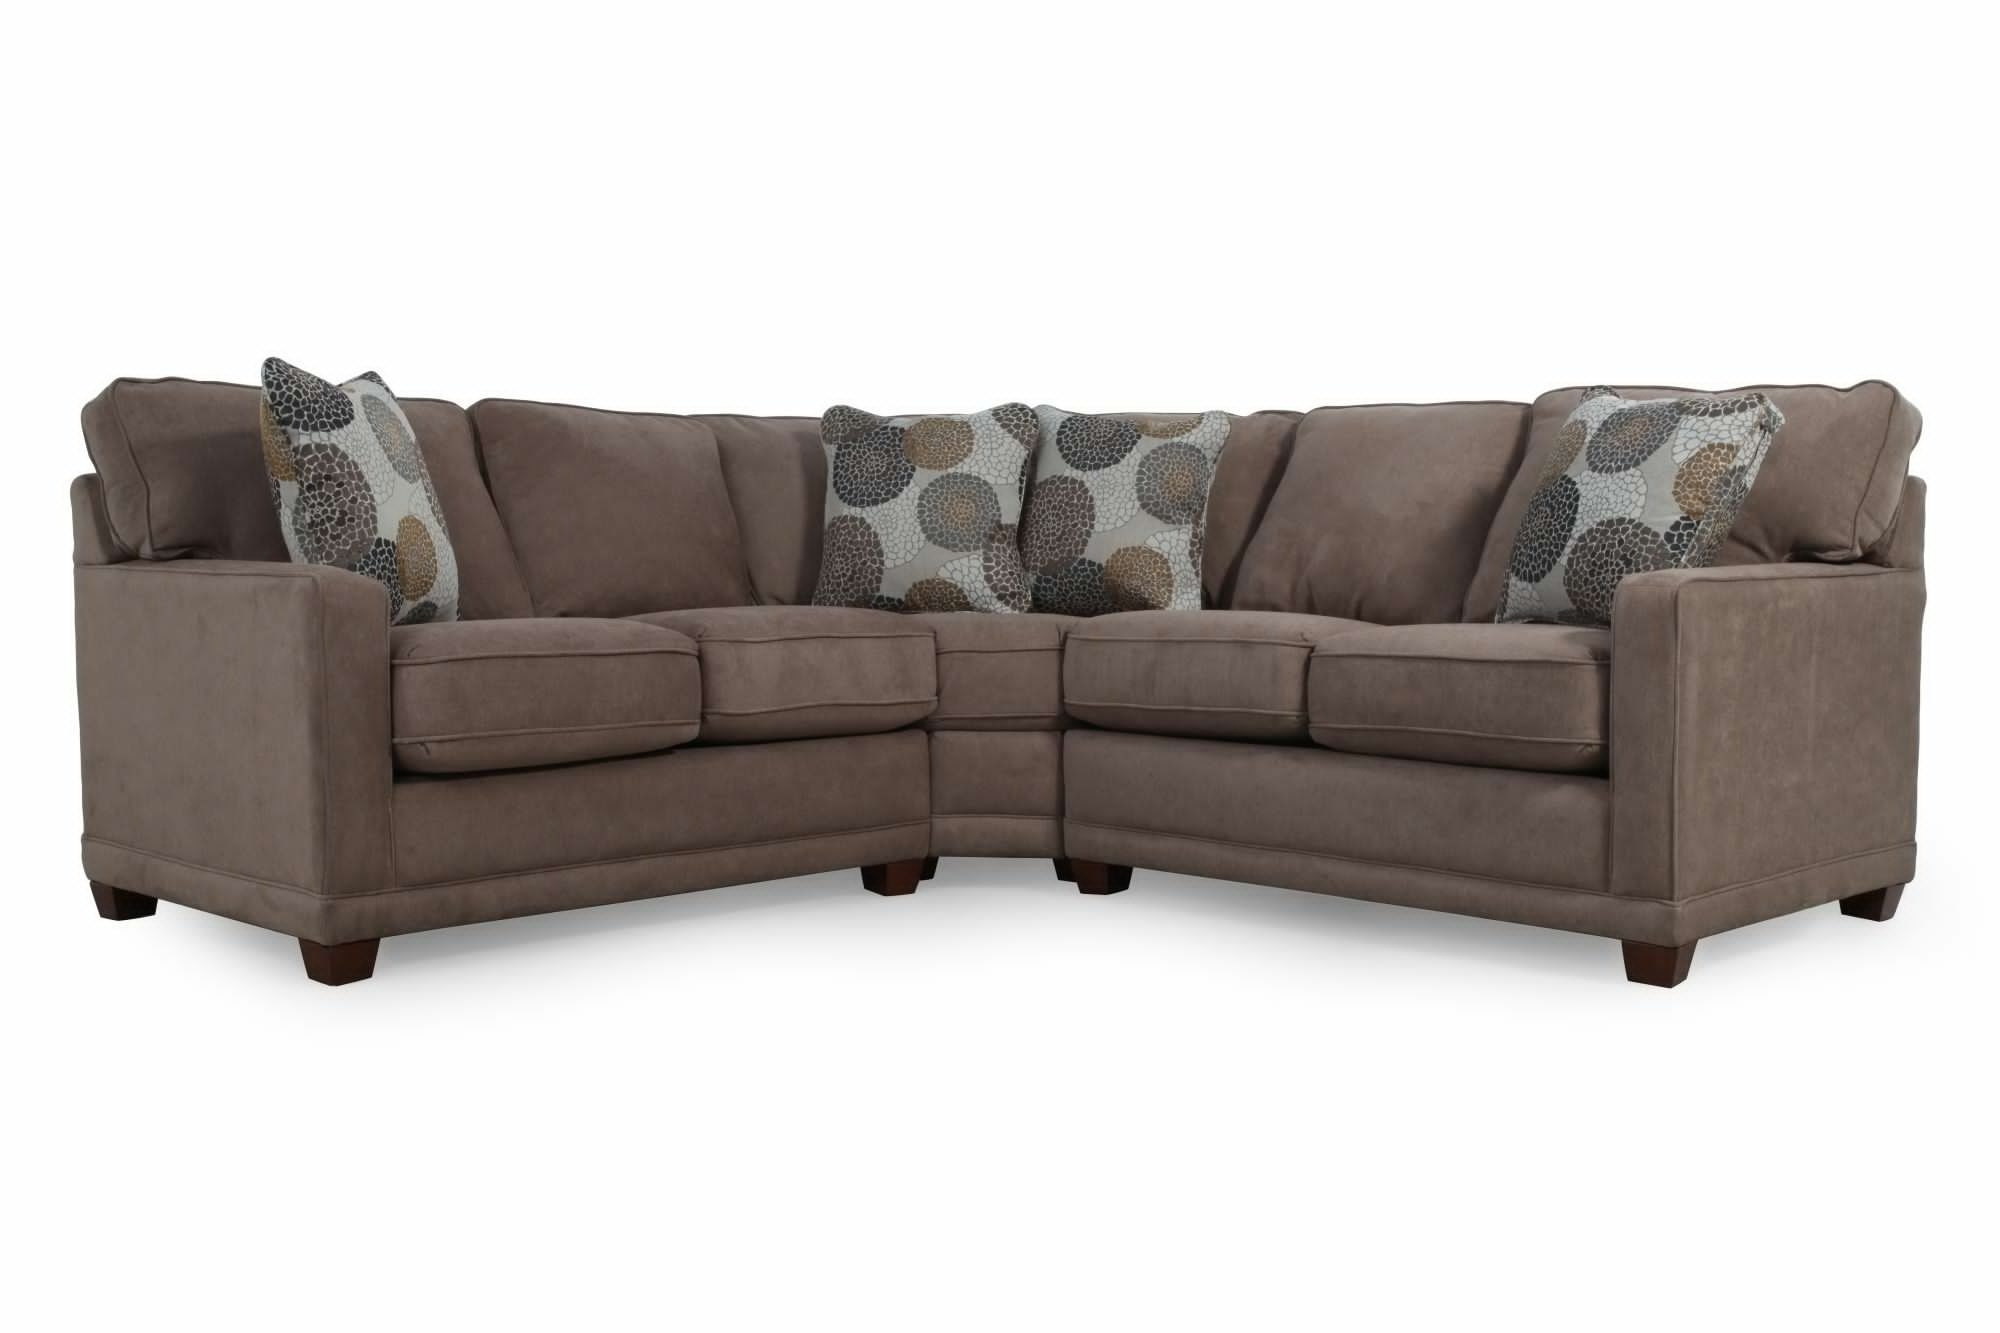 Most Recently Released Sectional Sofa Design: Lazy Boy Sectional Sofa Sale James With Regard To Sectional Sofas At Lazy Boy (View 10 of 20)